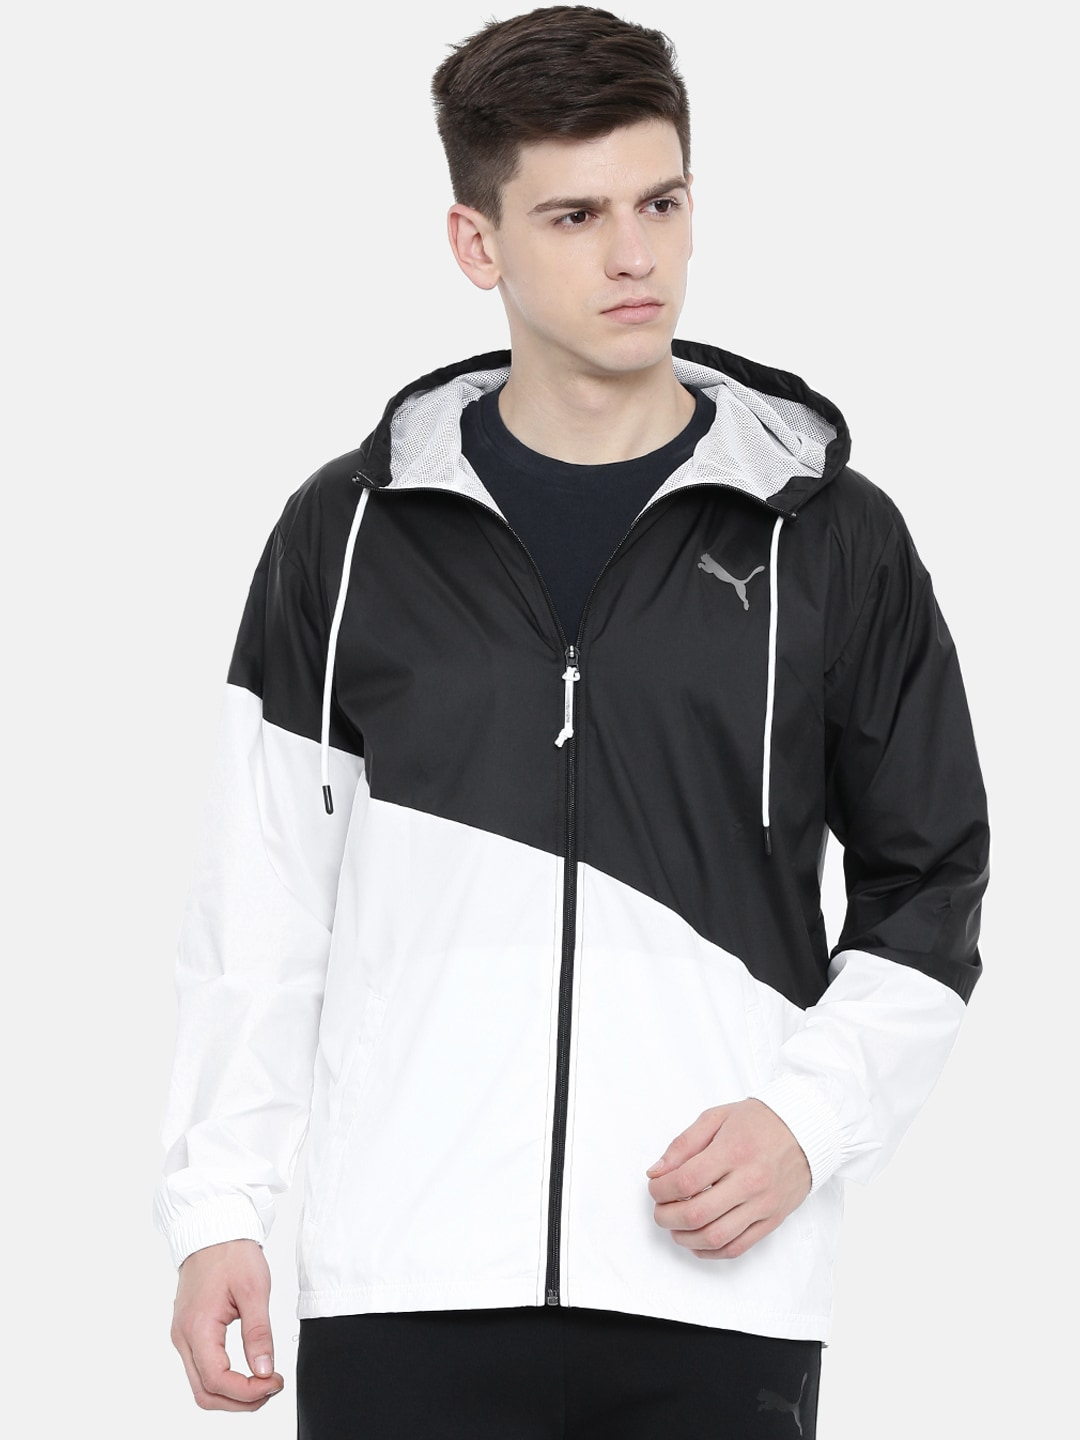 700086e3cc1 Jackets for Men - Shop for Mens Jacket Online in India